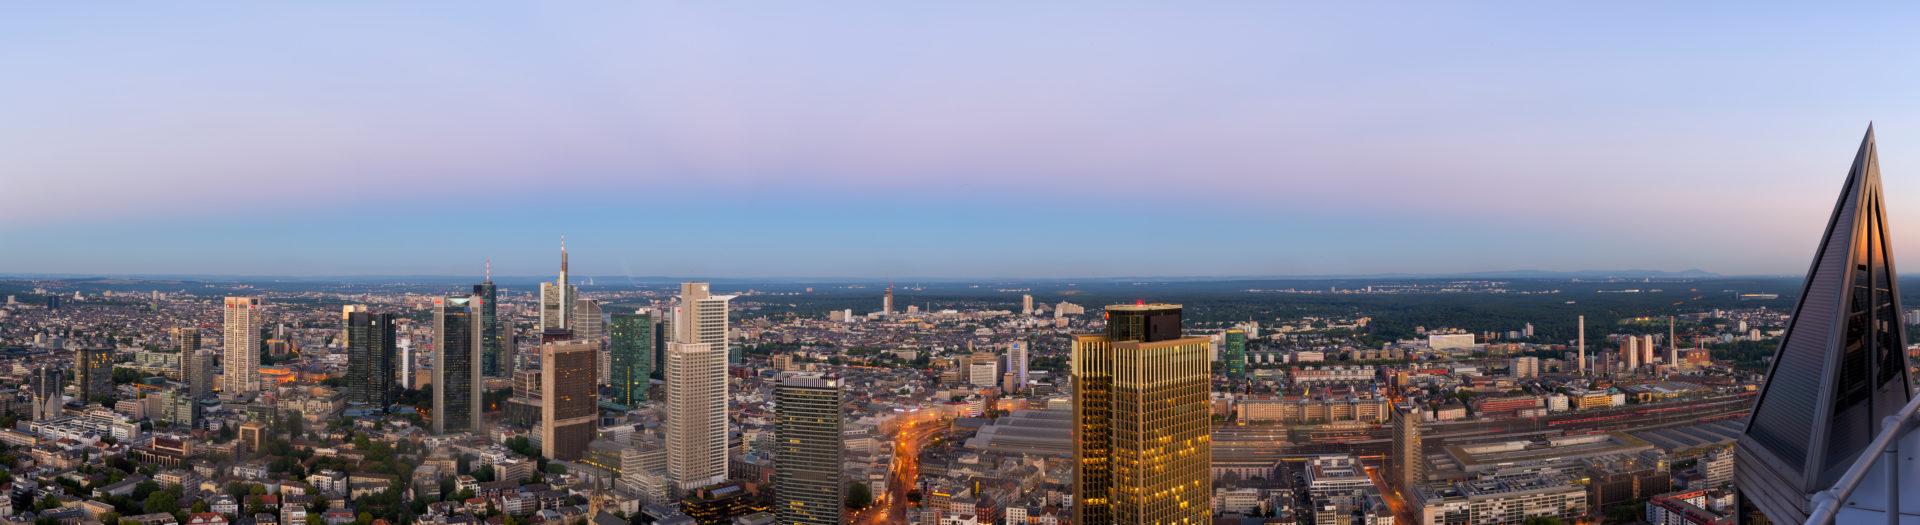 Frankfurt, Hessia, Germany, Panorama of the Frankfurt skyline with city centre and the financial district in the dusk.